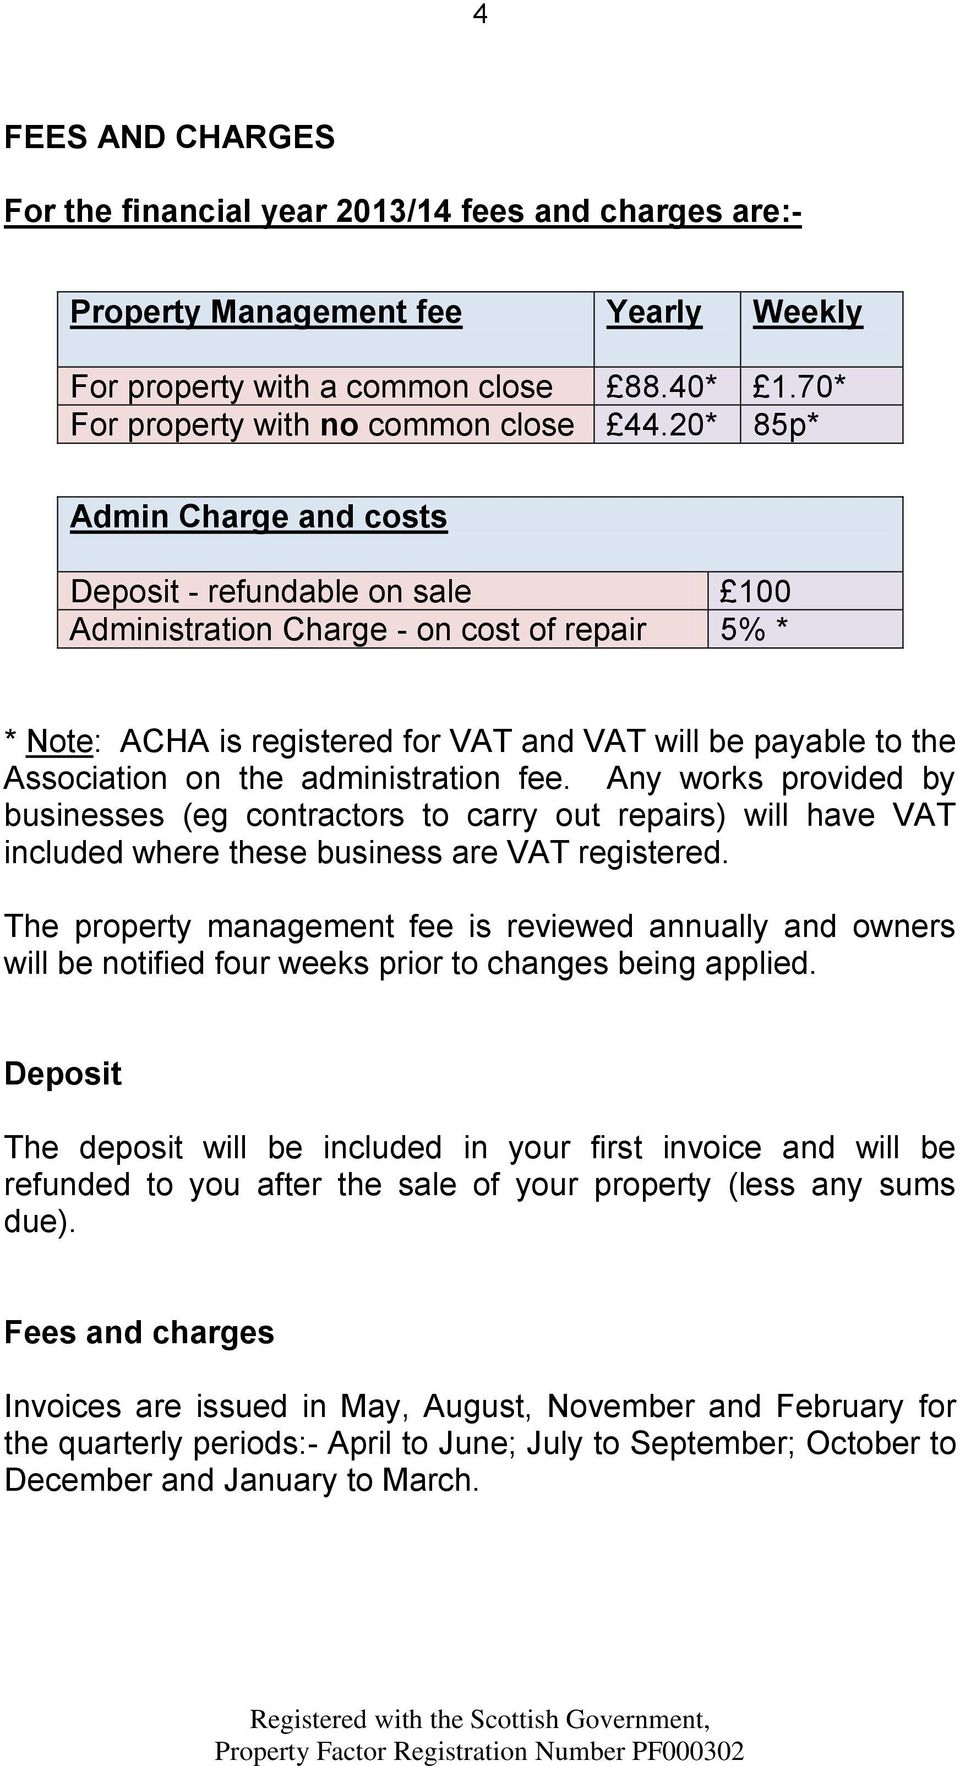 administration fee. Any works provided by businesses (eg contractors to carry out repairs) will have VAT included where these business are VAT registered.